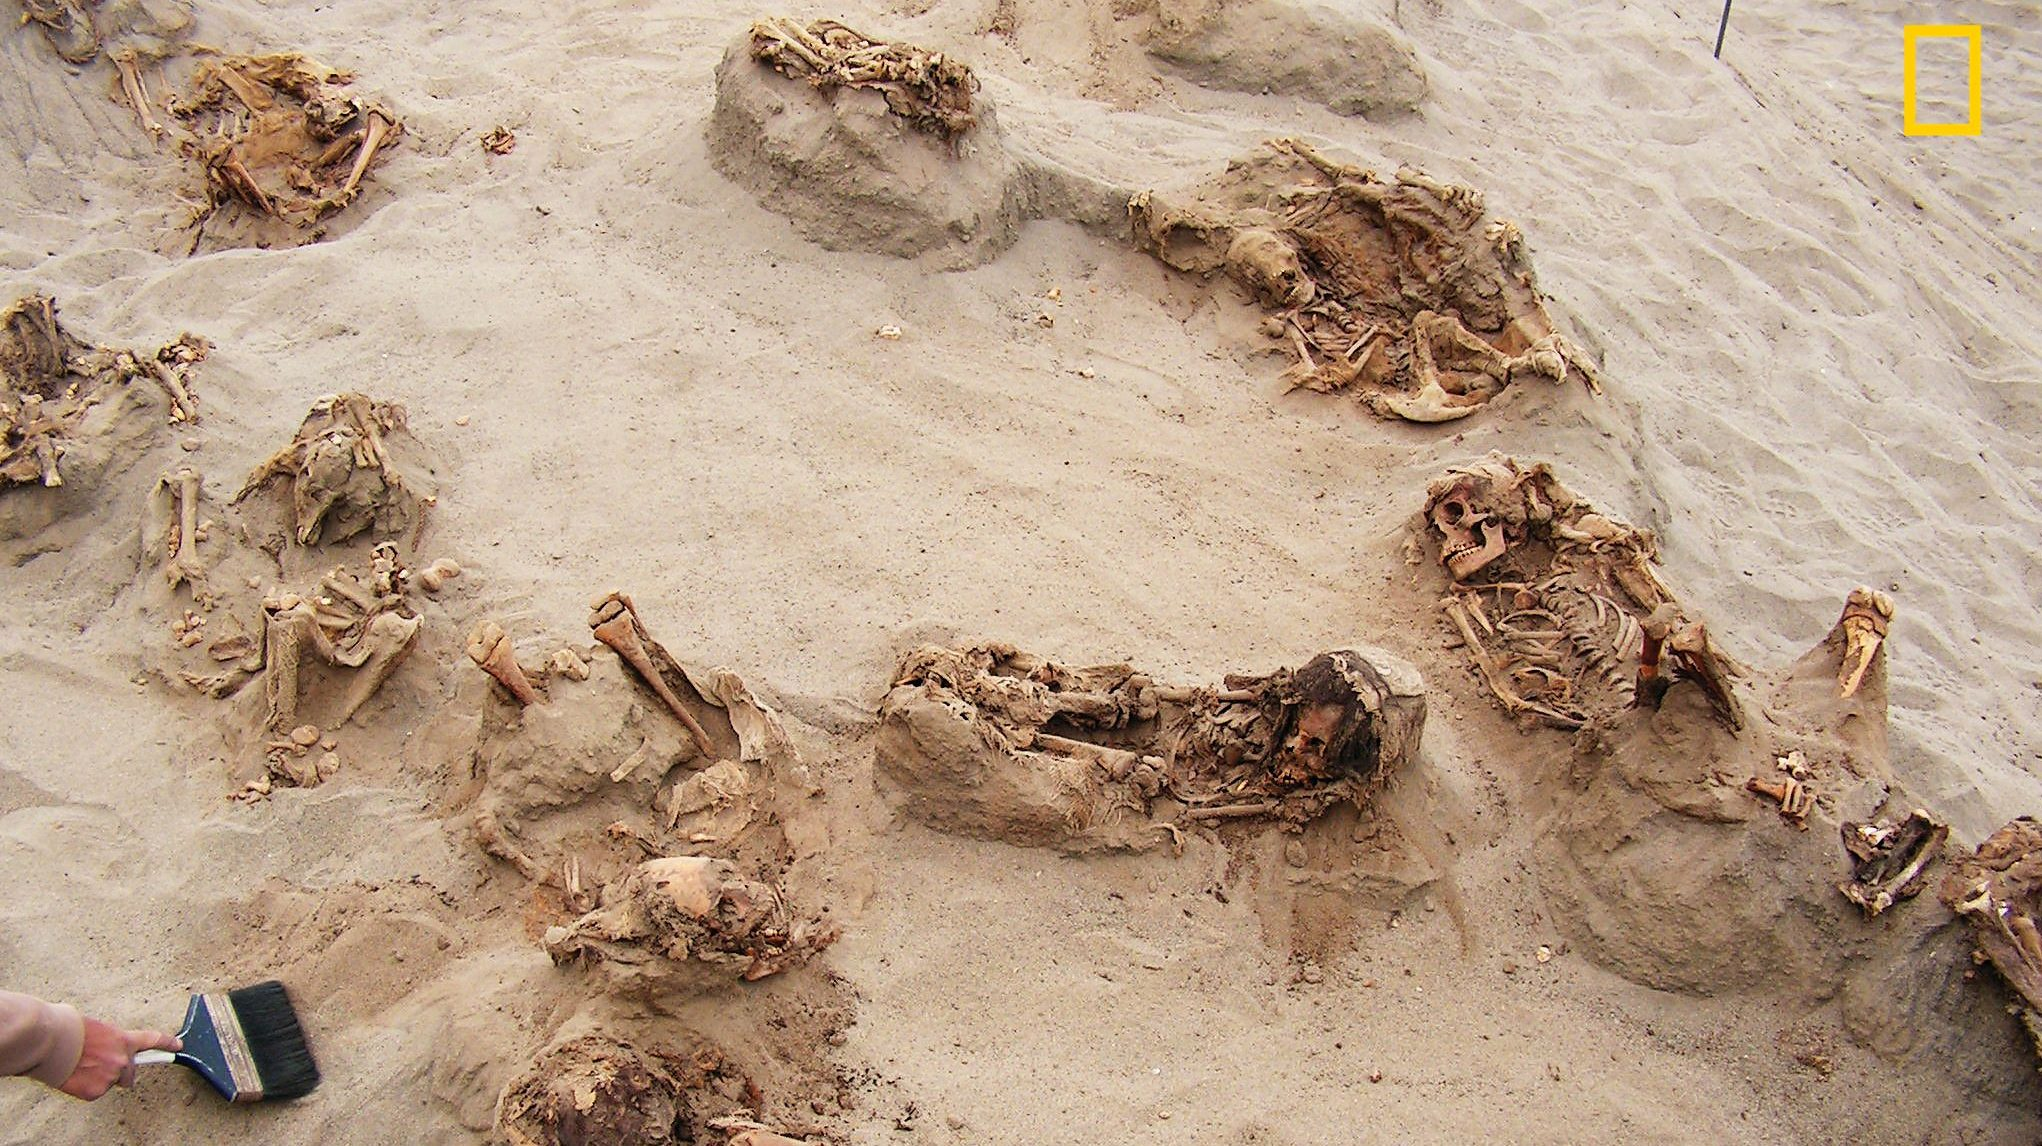 Children Killed In History's Largest Mass Sacrifice Unearthed In Peru